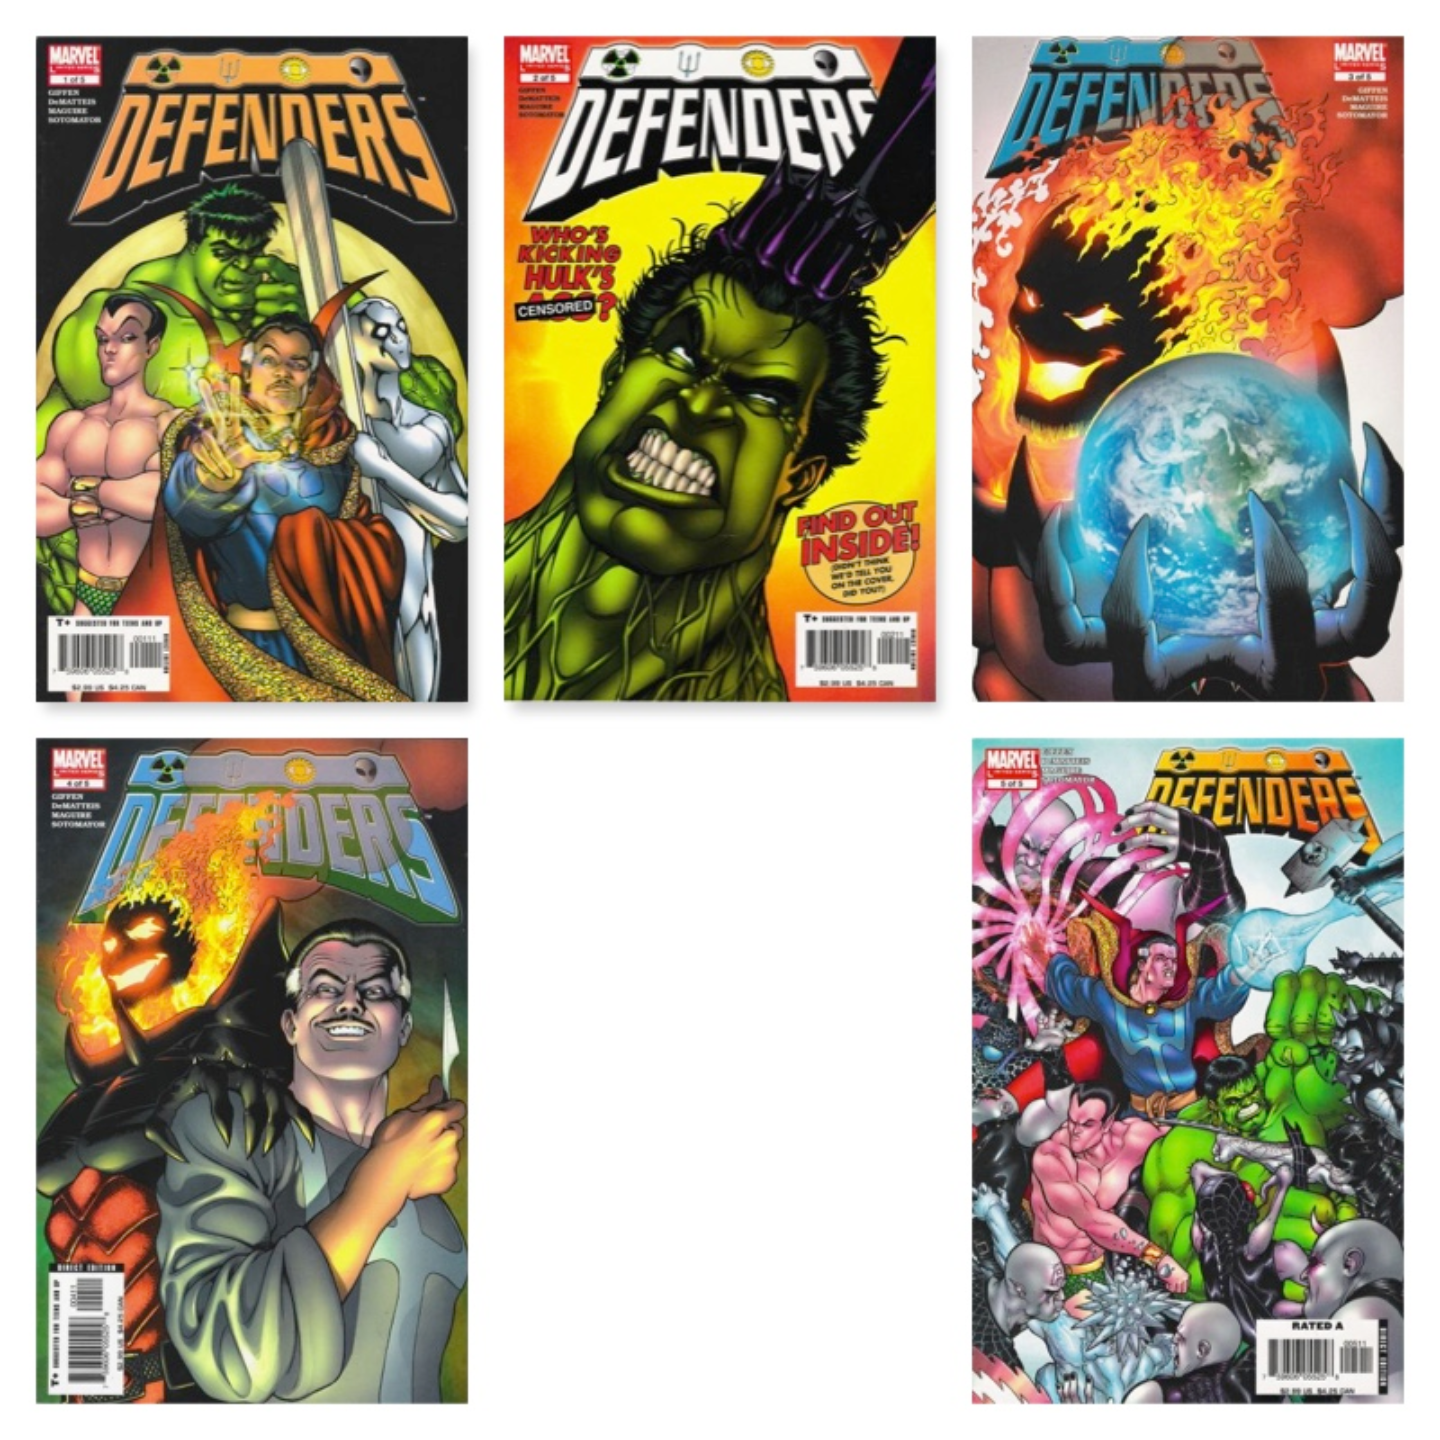 DEFENDERS #1 - #5 (COMPLETE LIMITED SERIES)